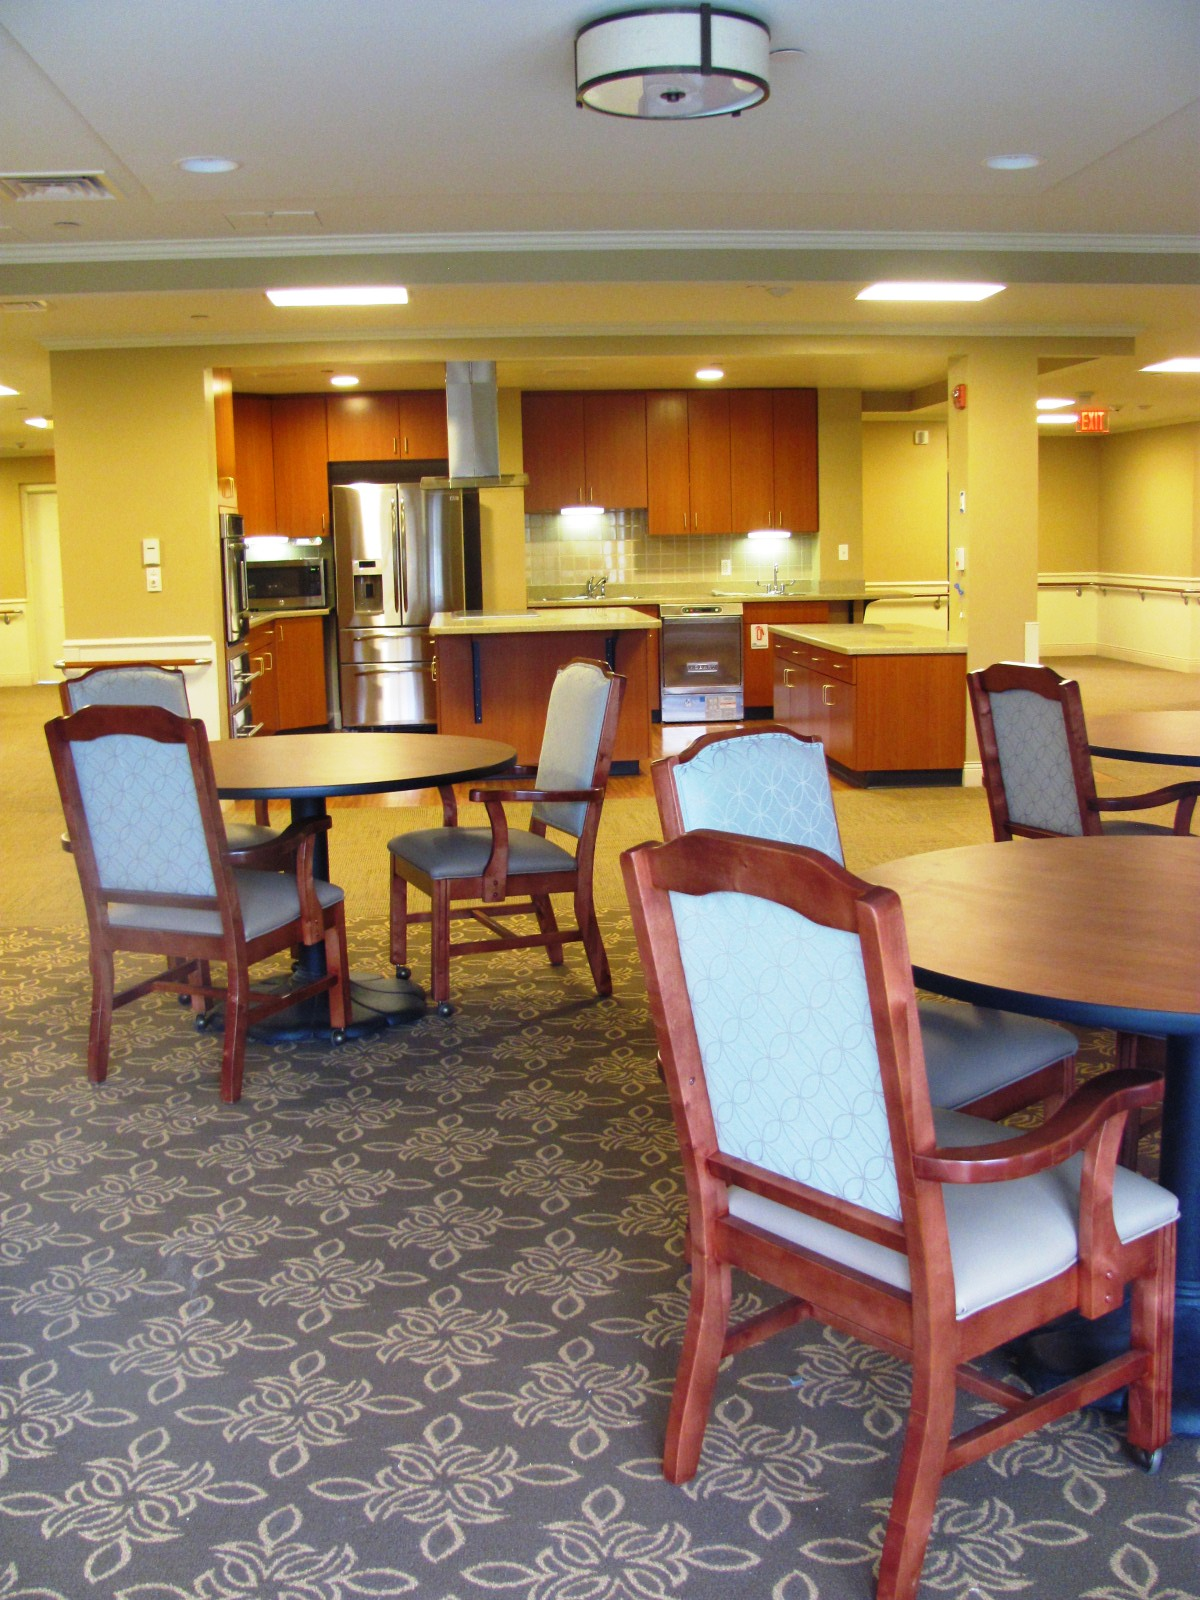 April_15_View_Kitchen_from_Dining_Area.jpg